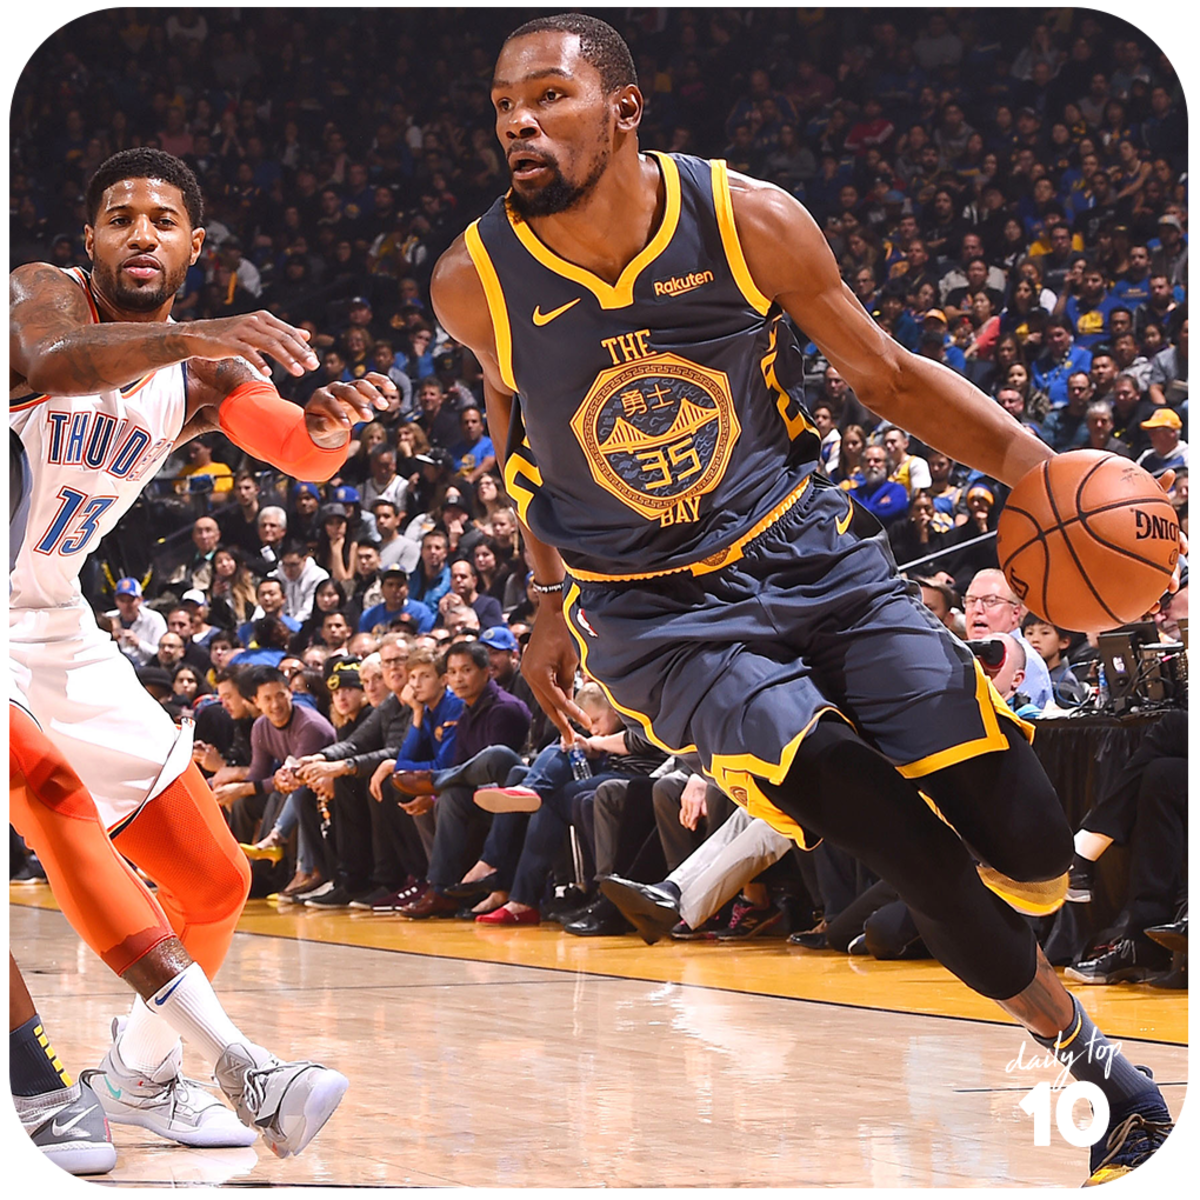 Kevin Durant drives while being chased by Paul George of the Oklahoma City Thunder.